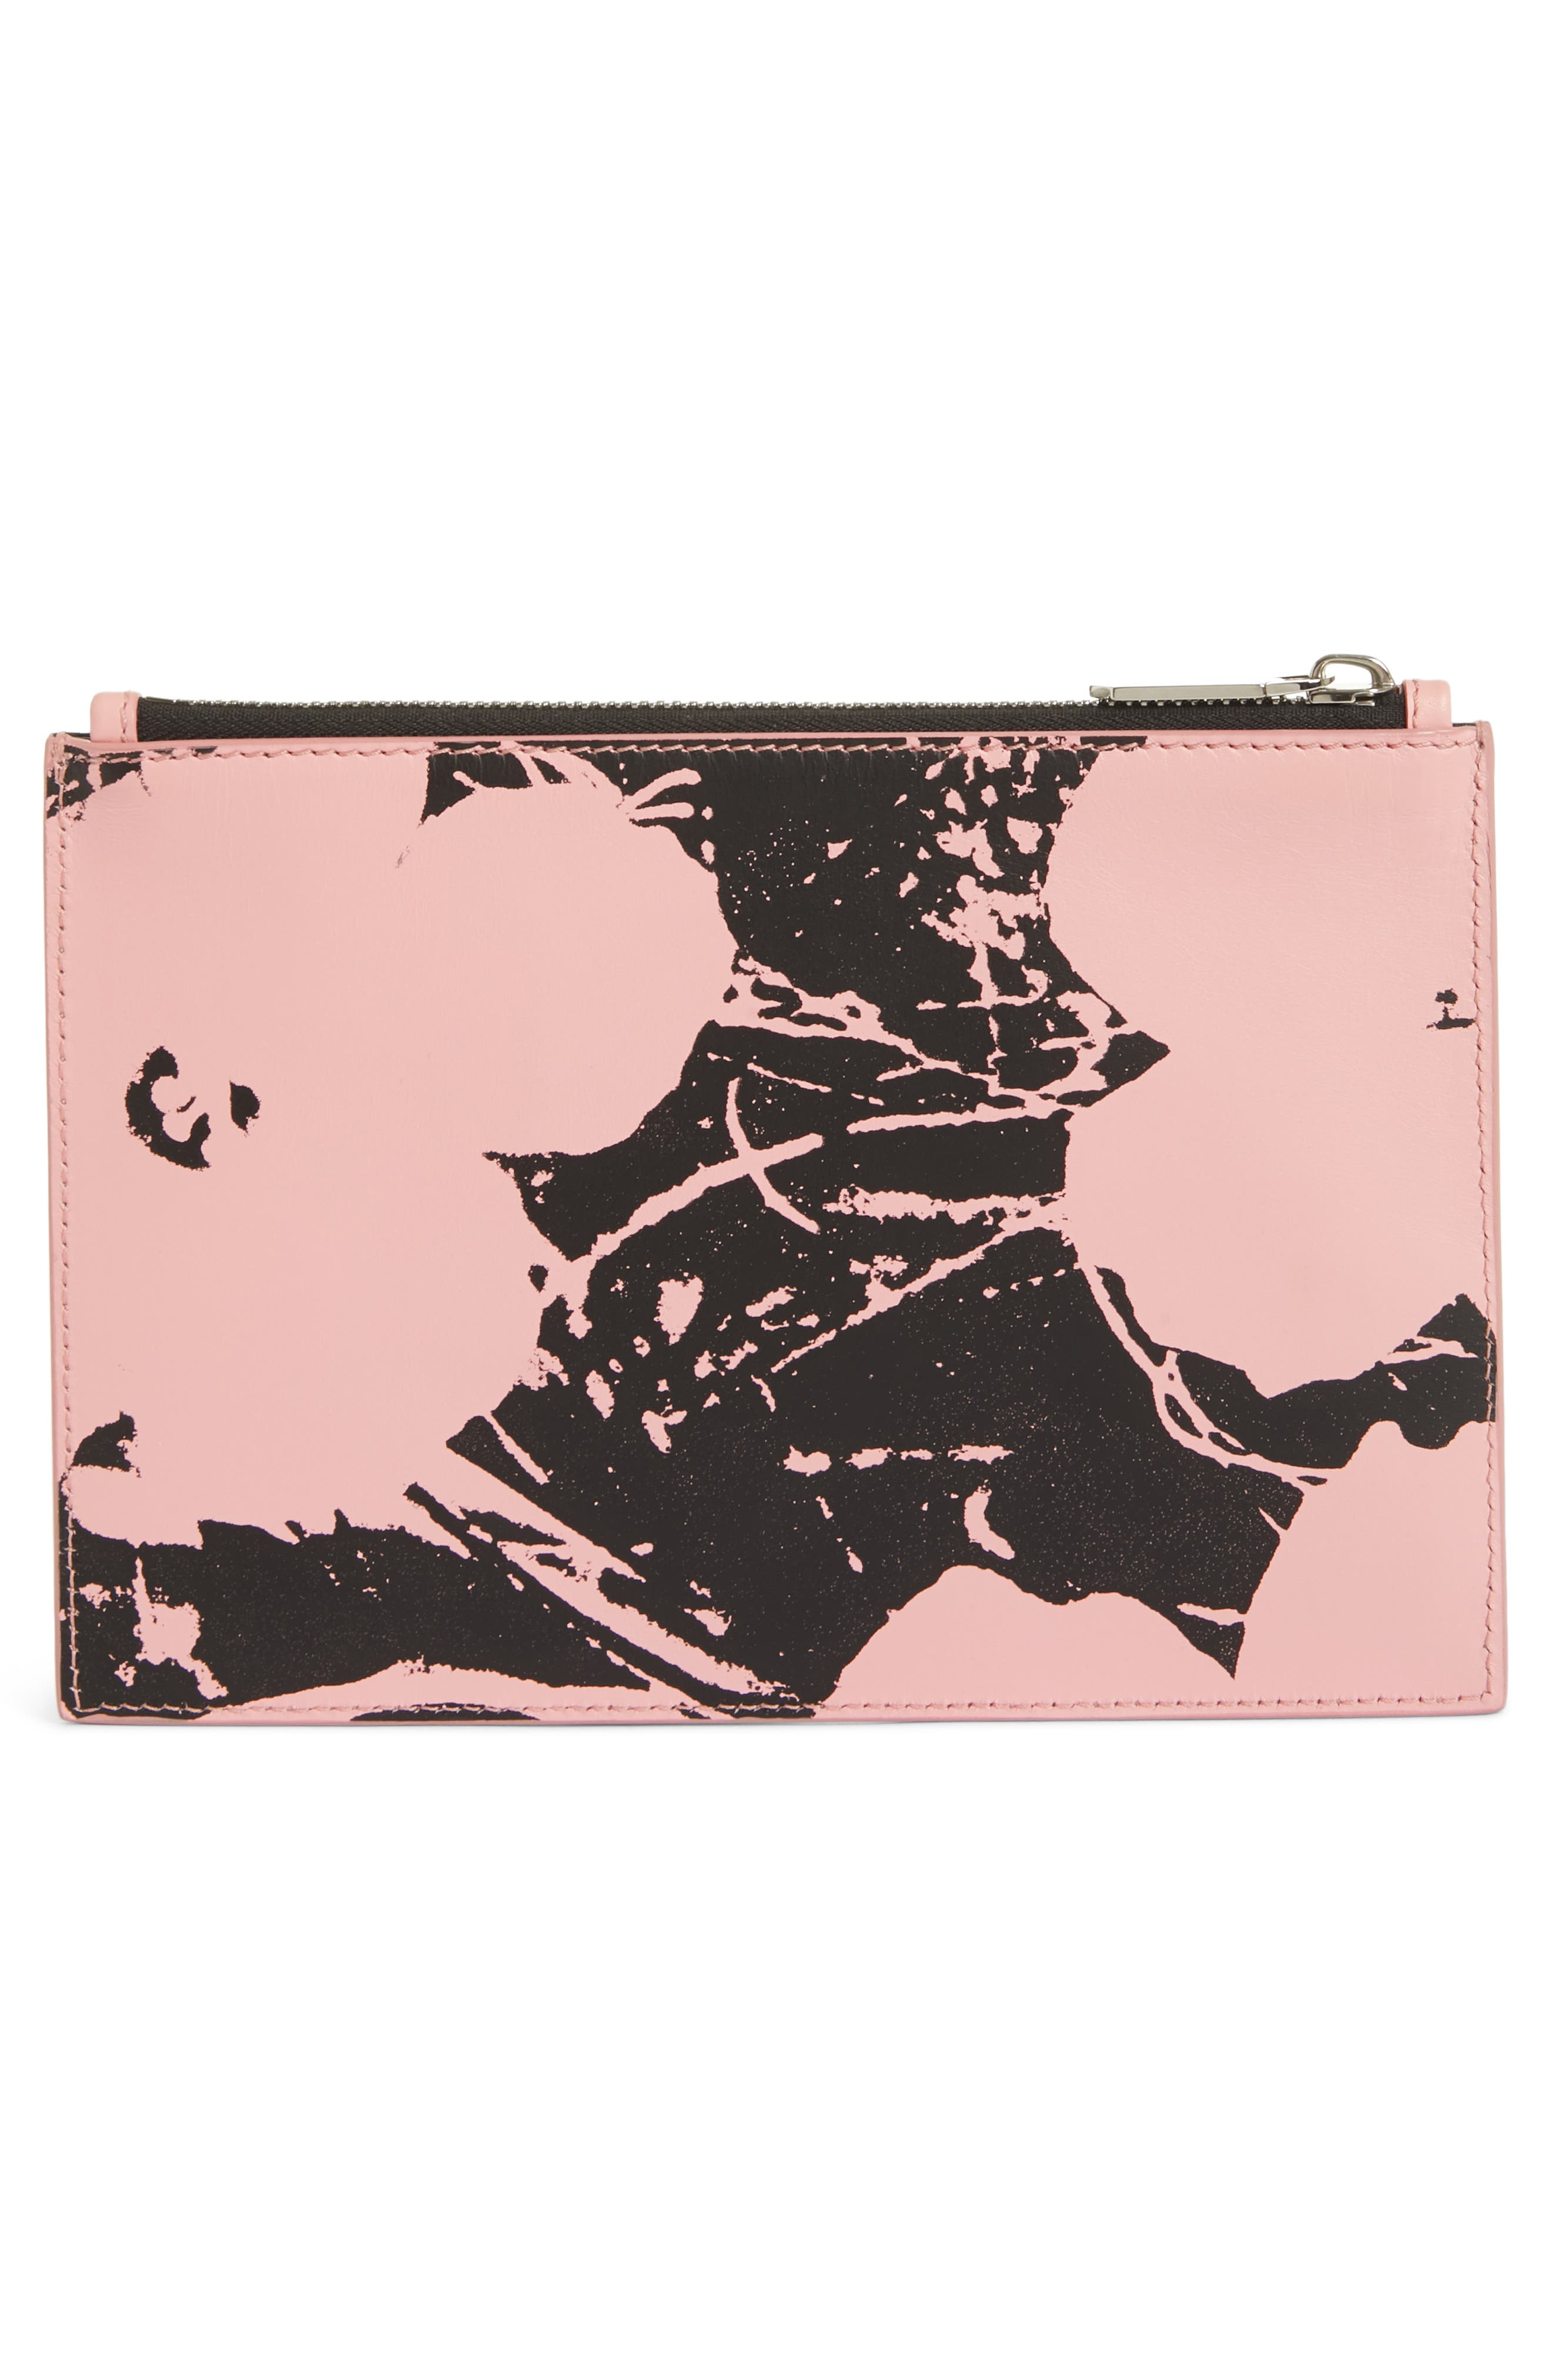 x Andy Warhol Foundation Flowers Leather Pouch,                             Alternate thumbnail 3, color,                             PINK/ BLACK